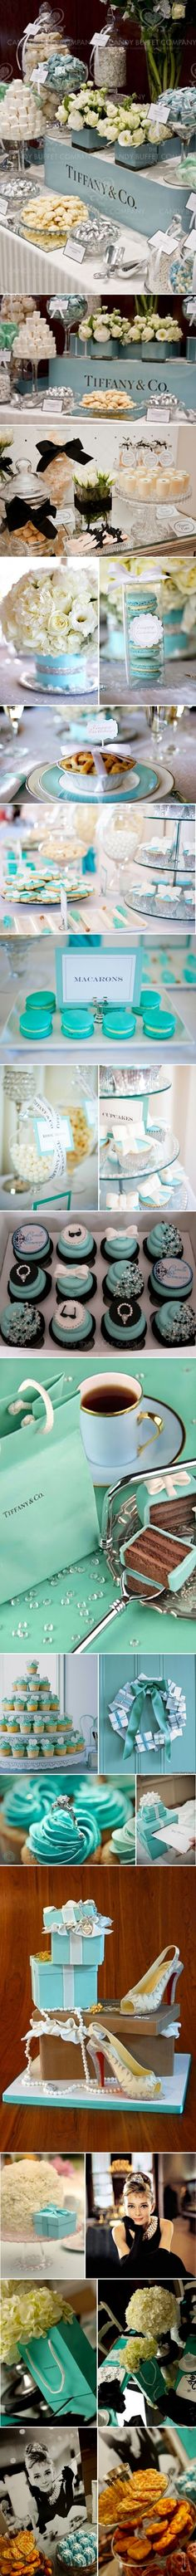 Tiffany & Co. Theme - She would LOVE LOVE LOVE this!